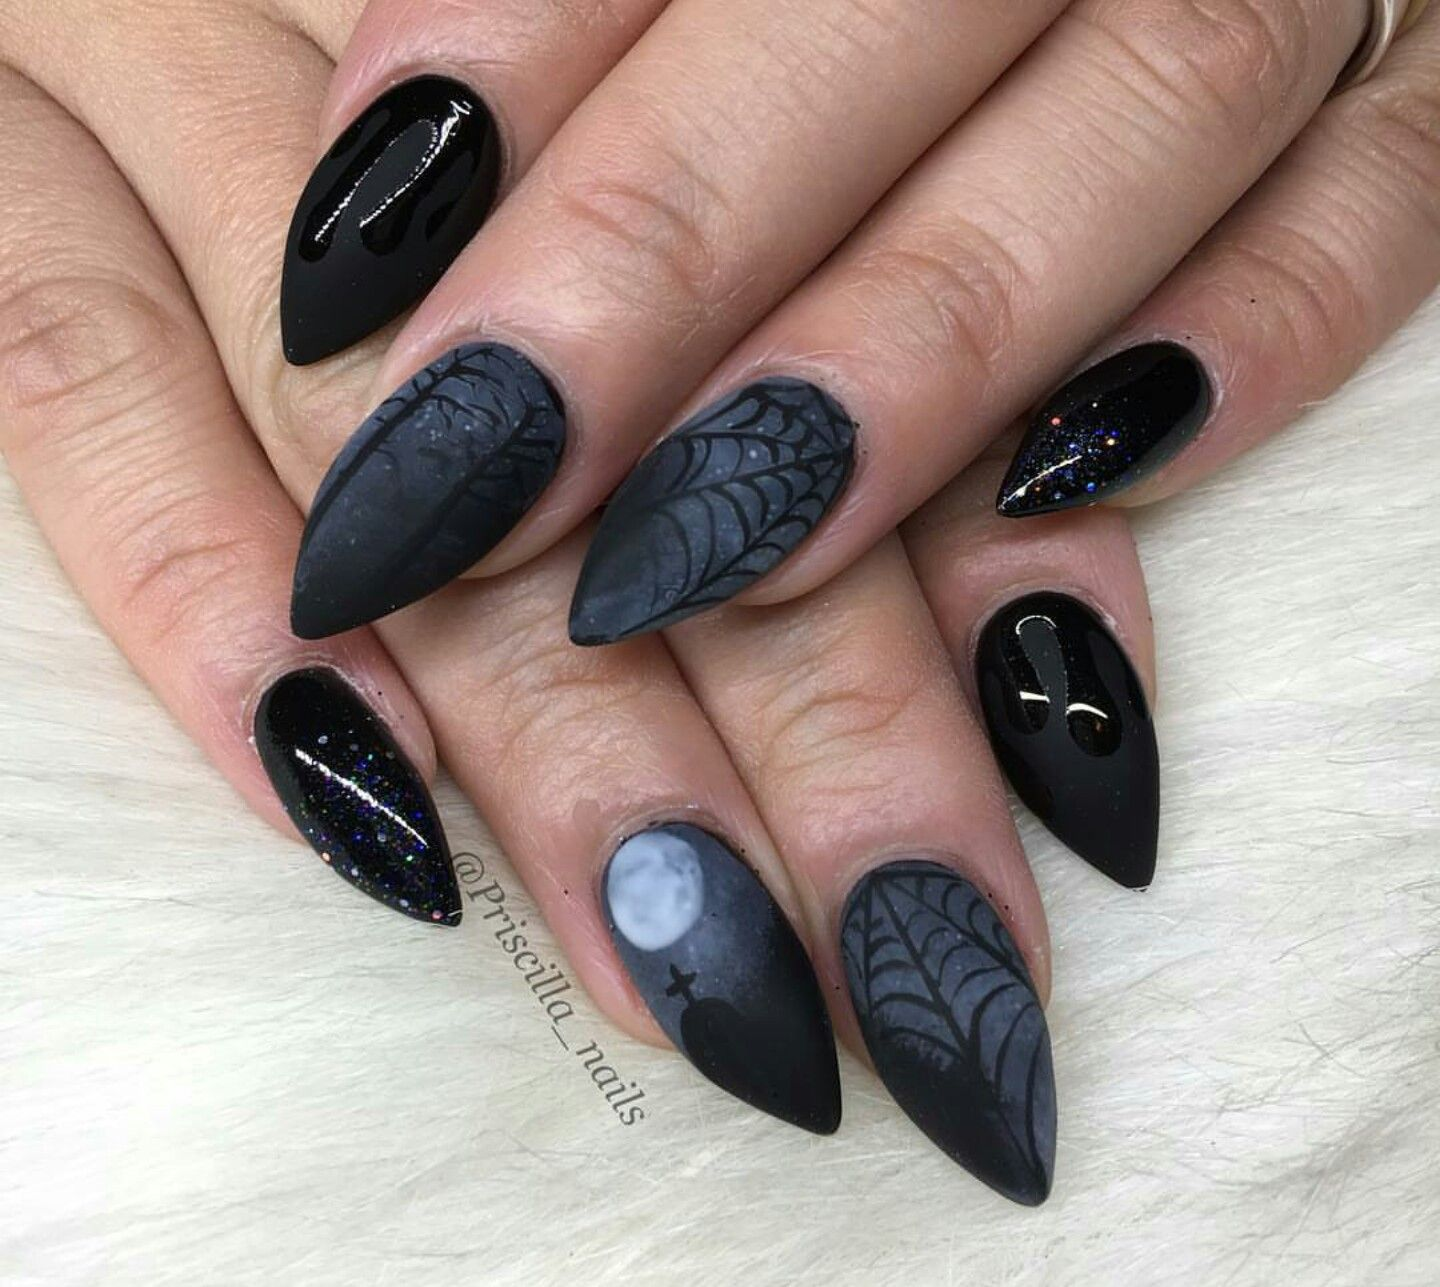 Pin by Unique Cook on The dark findings in 2019 | Gothic ...